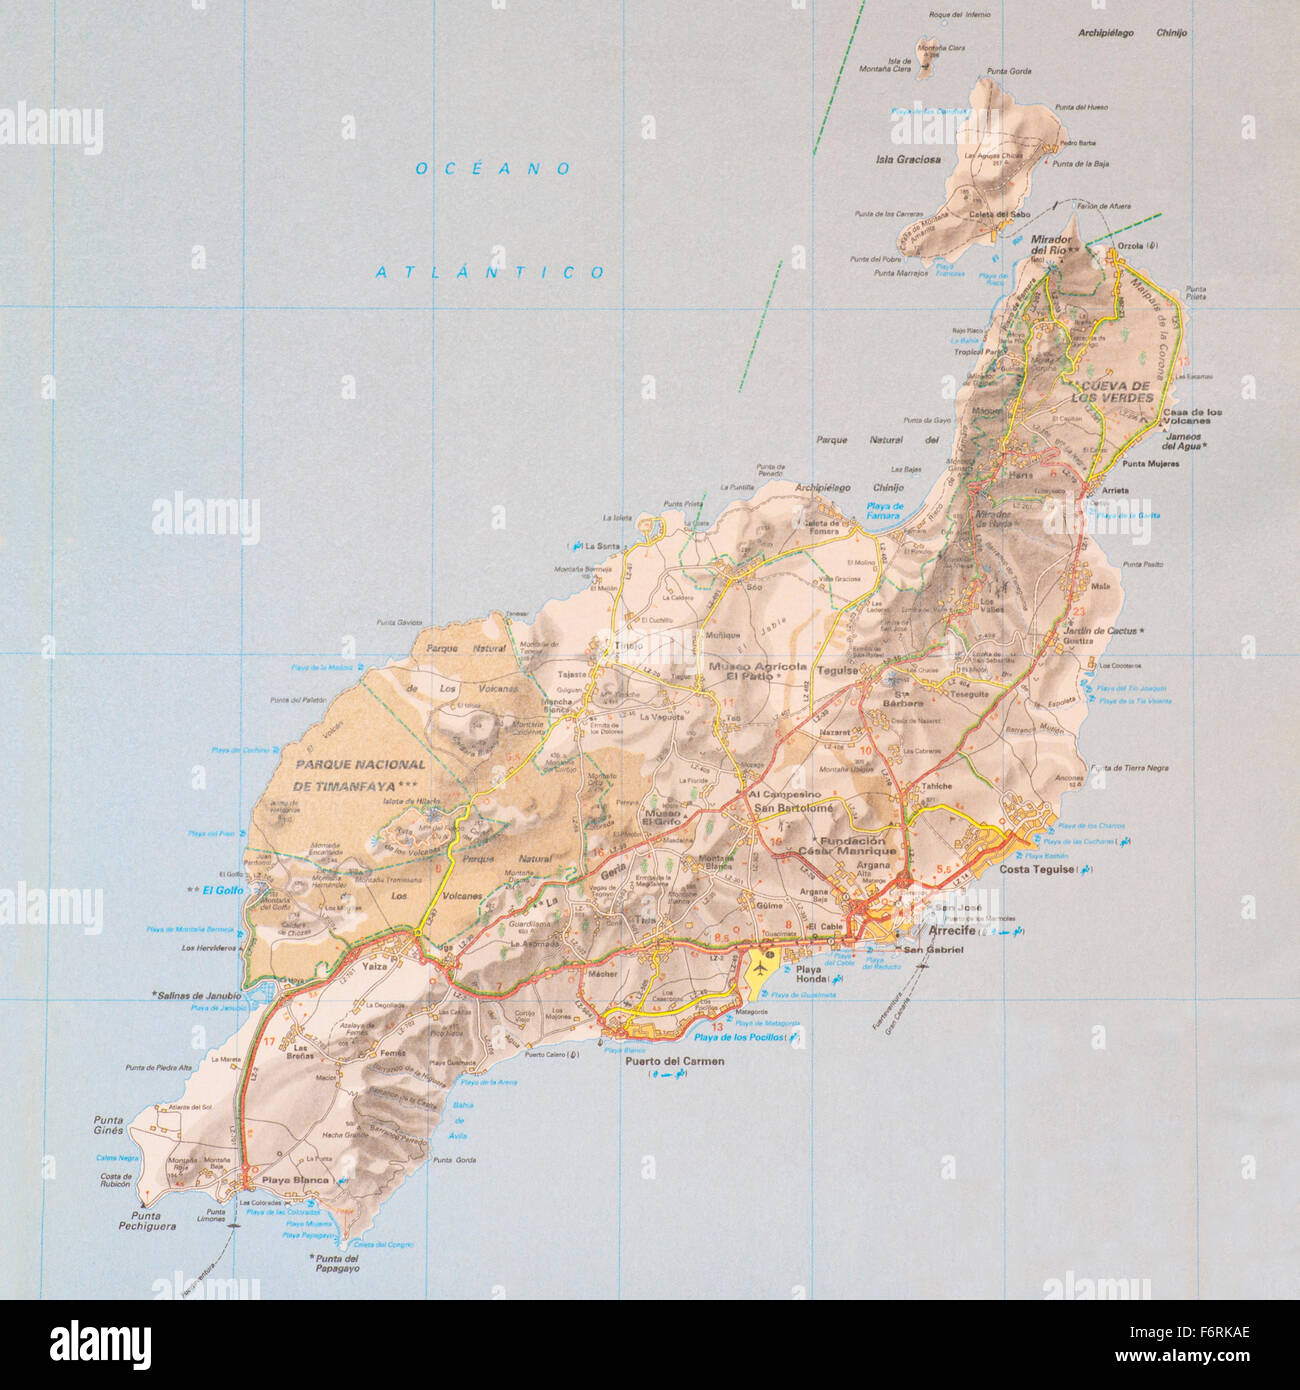 Map Of Spain Lanzarote.Map Of The Spanish Canary Island Of Lanzarote Stock Photo 90259862